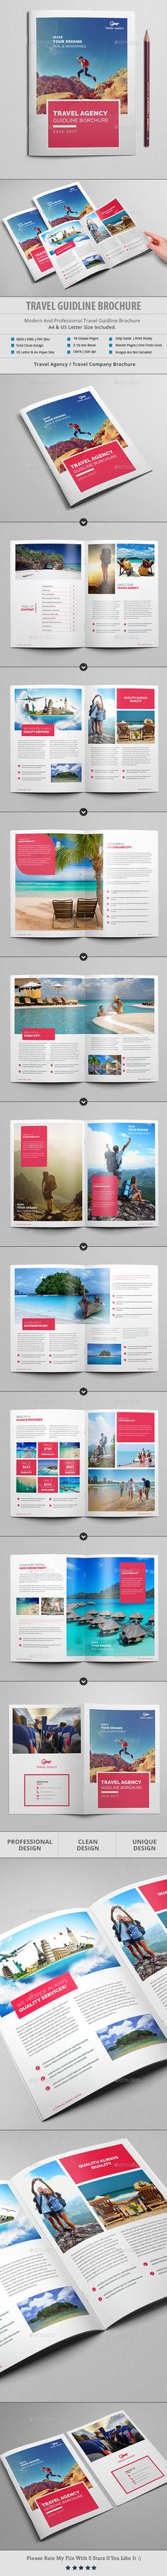 Travel Agency Brochure / Catalog Template — InDesign INDD #technology catalog #finance brochure